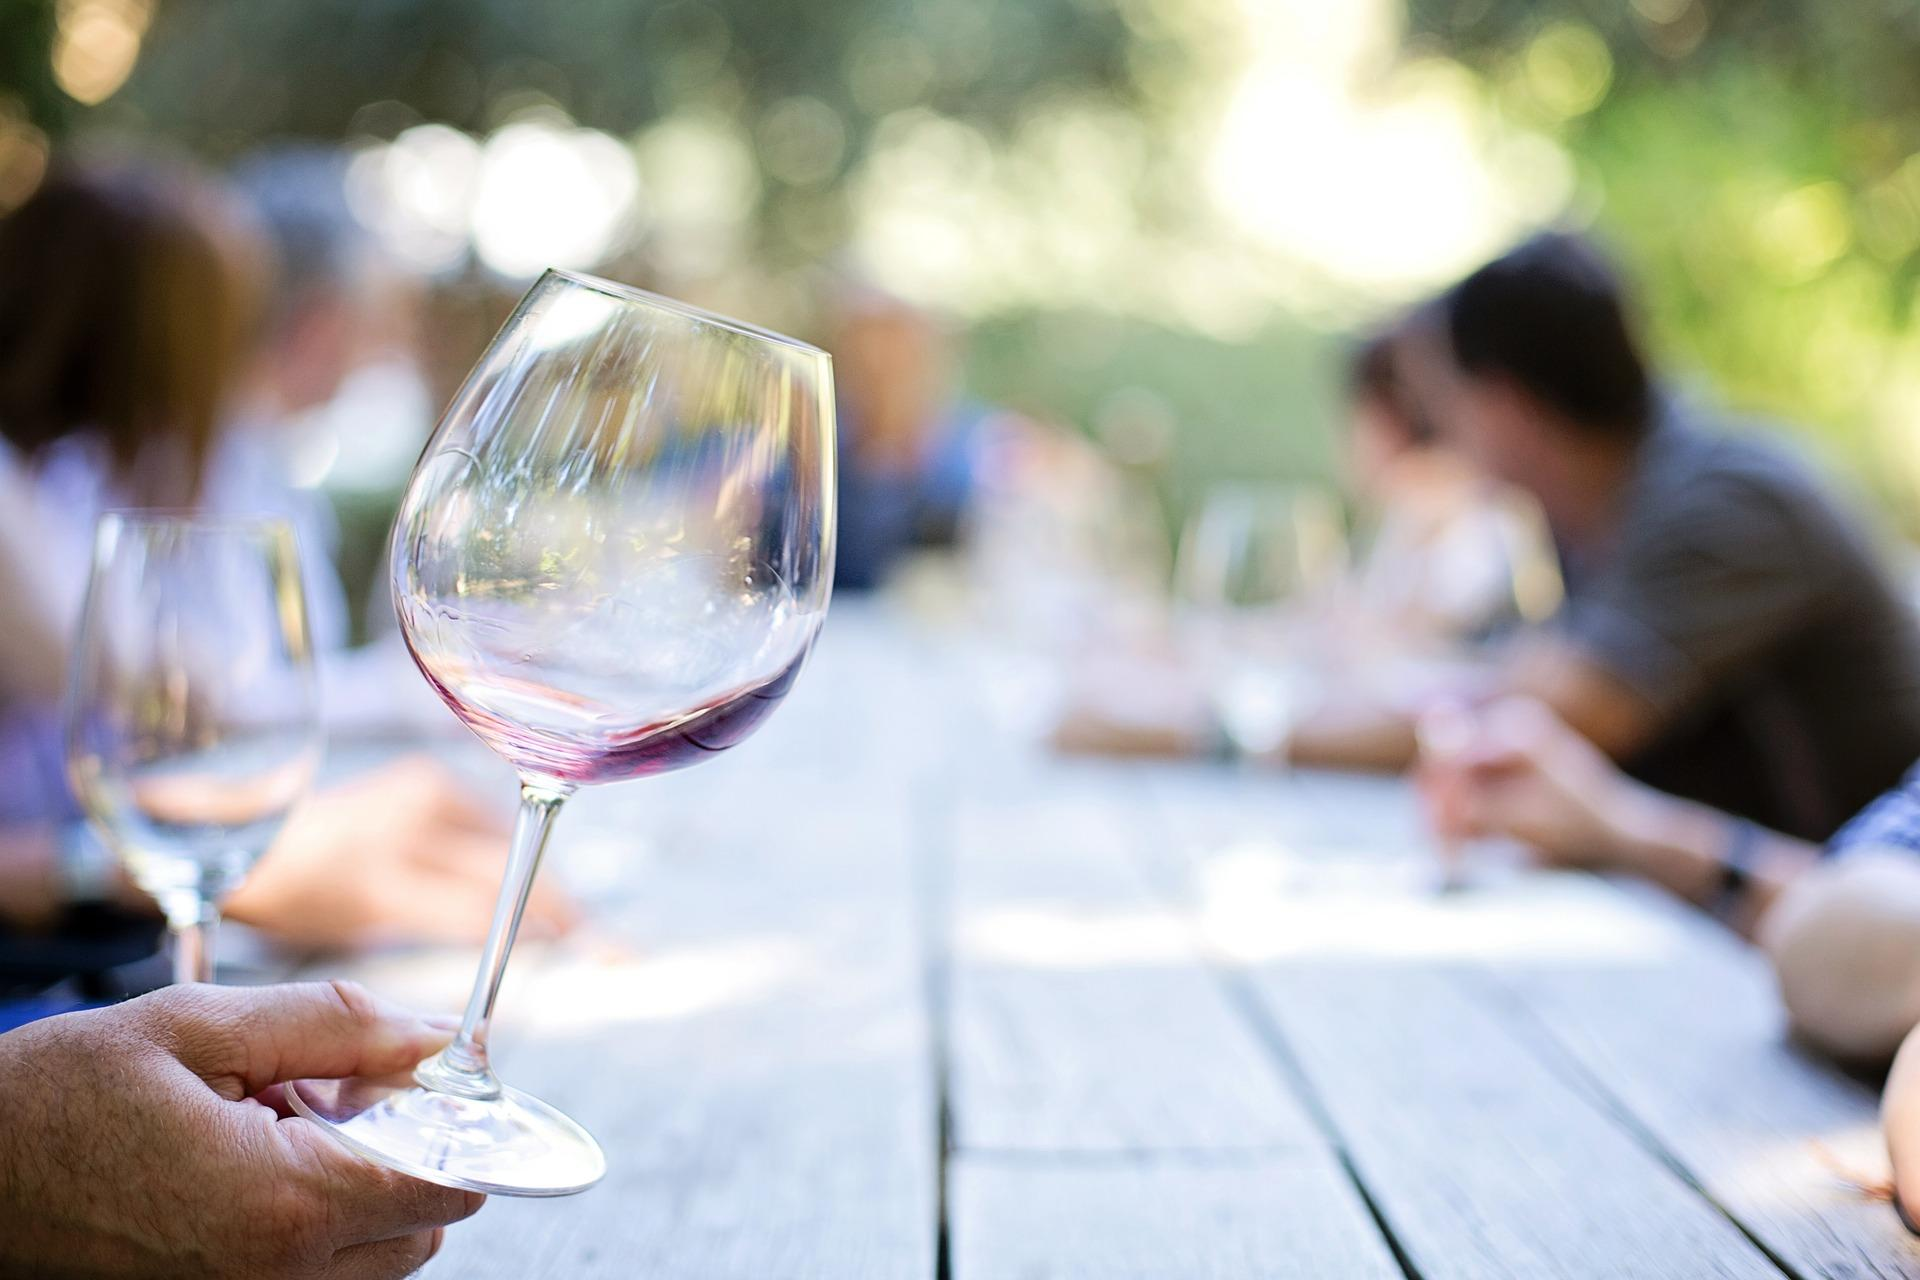 The Judgement of Kingston: Celebrating the County's World-Class Wines